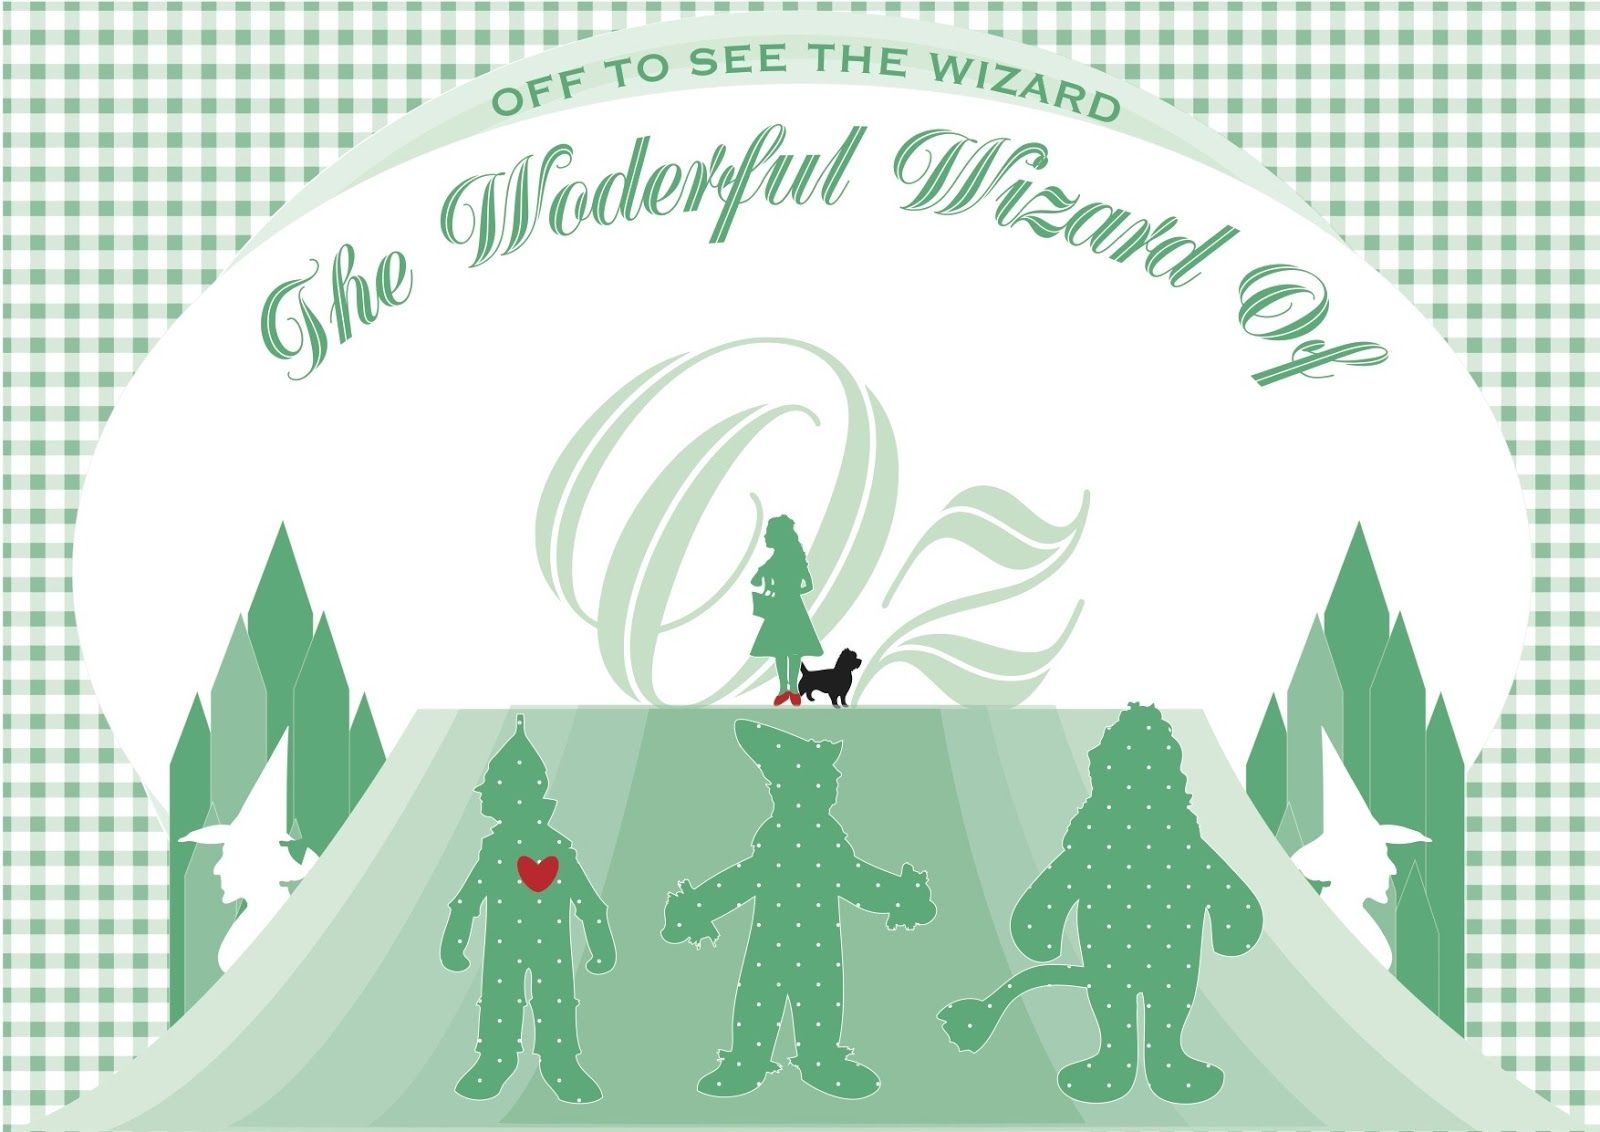 You are In Good Company GOOD PLAN - Wizard of Oz Entrance the - Wizard Of Oz Halloween Decorations